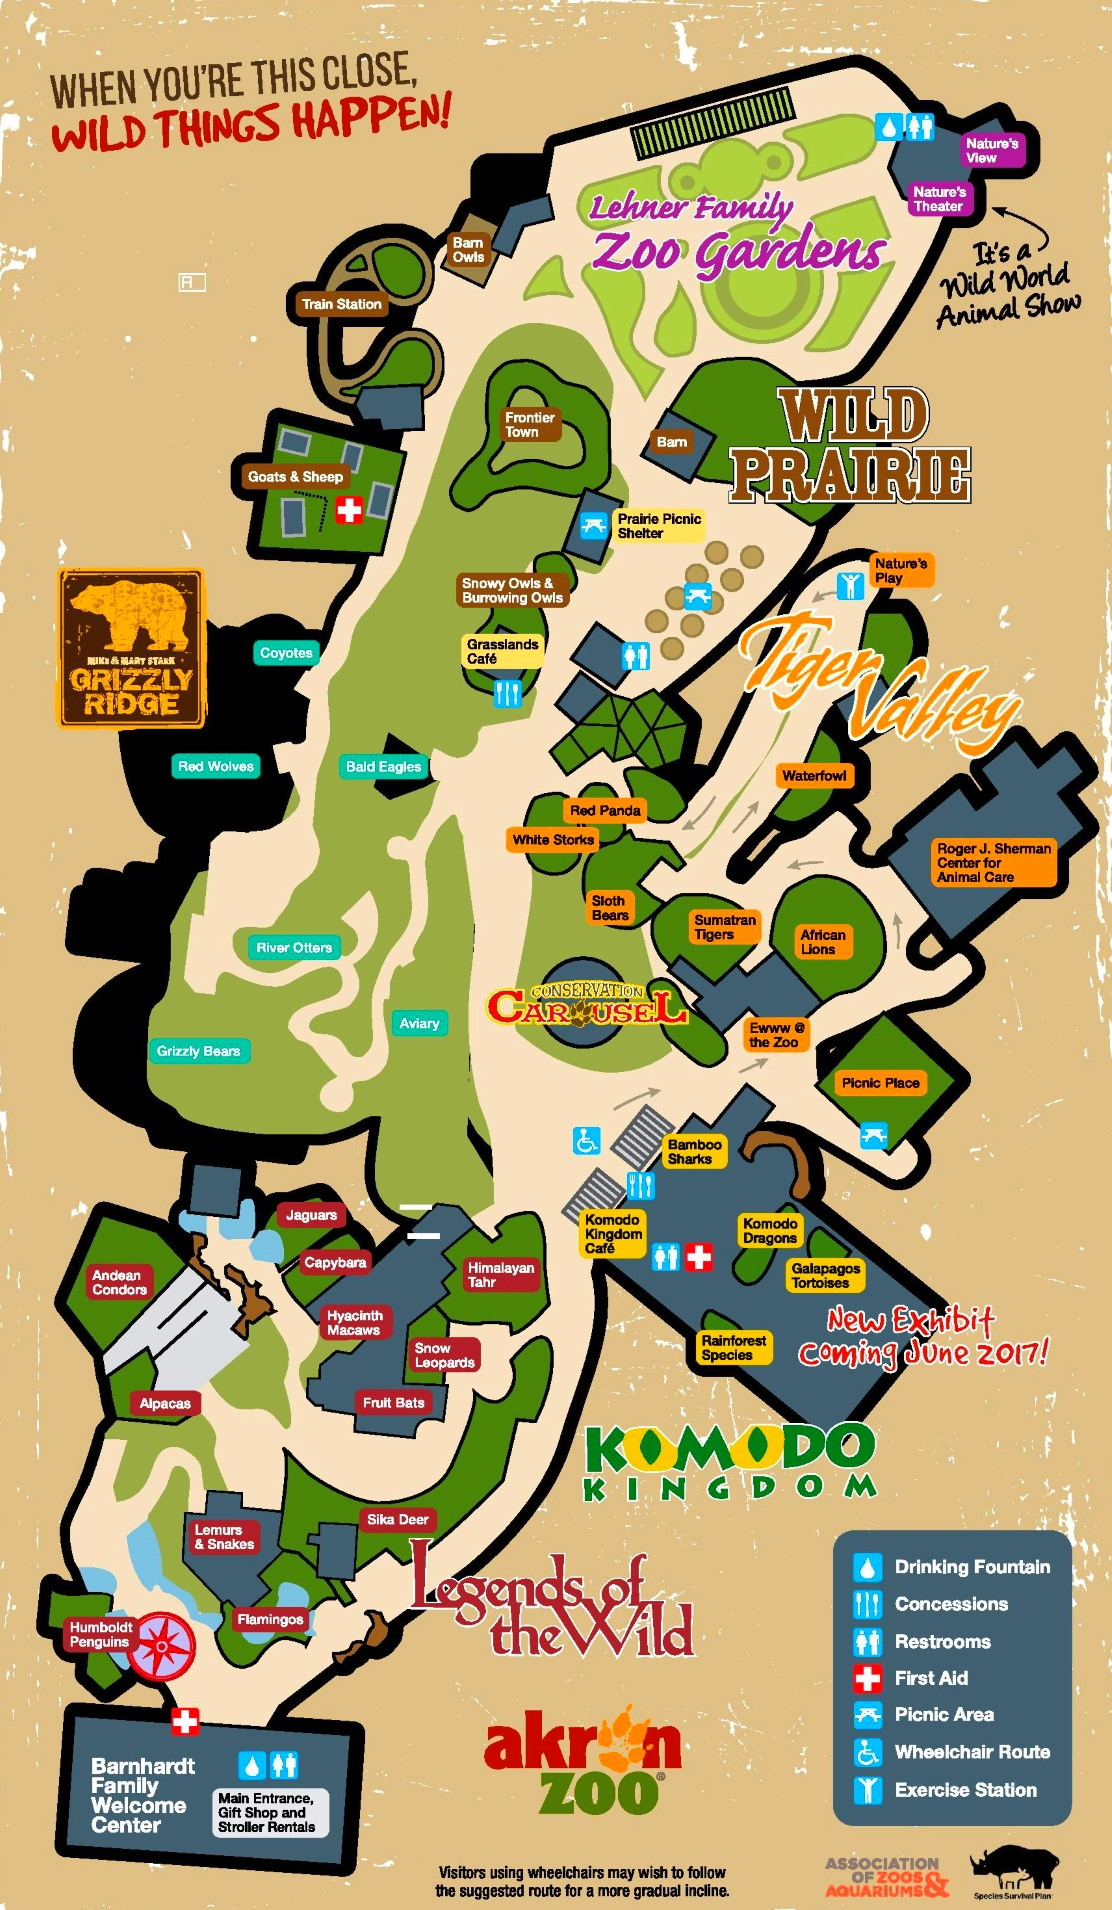 Akron Zoo map